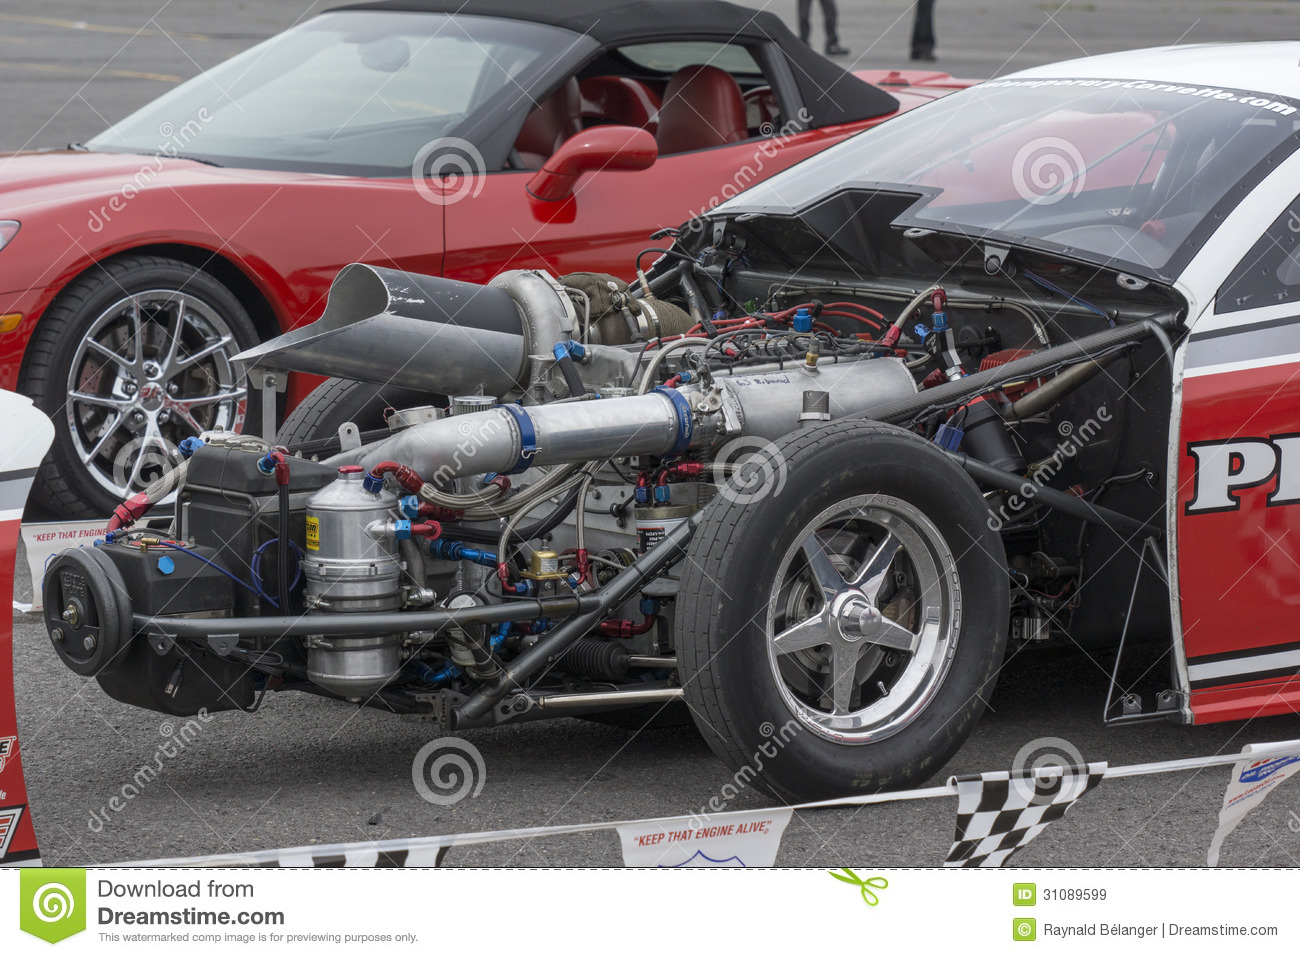 Drag car engine editorial stock image. Image of high - 31089599